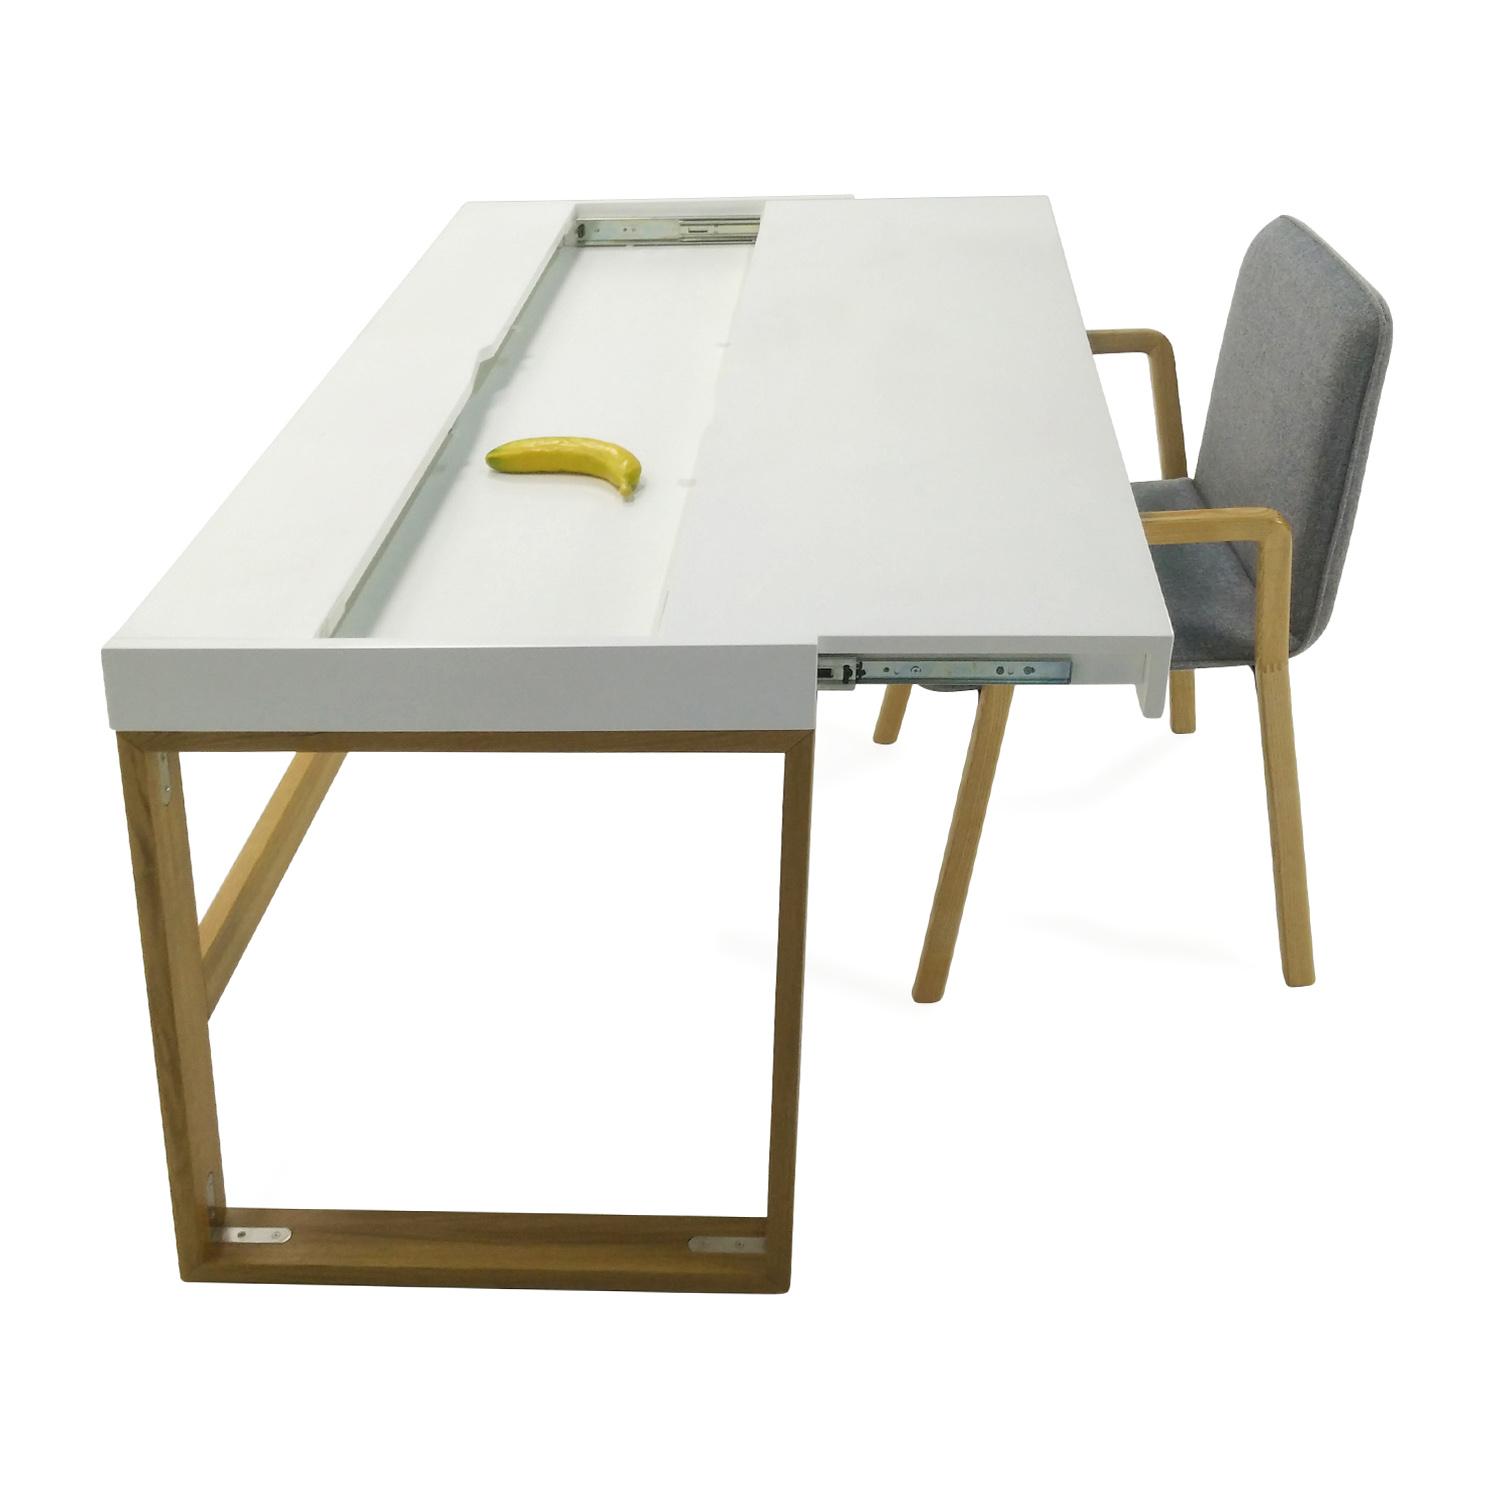 49 Off Cb2 Cb2 Chamber Desk Set Tables